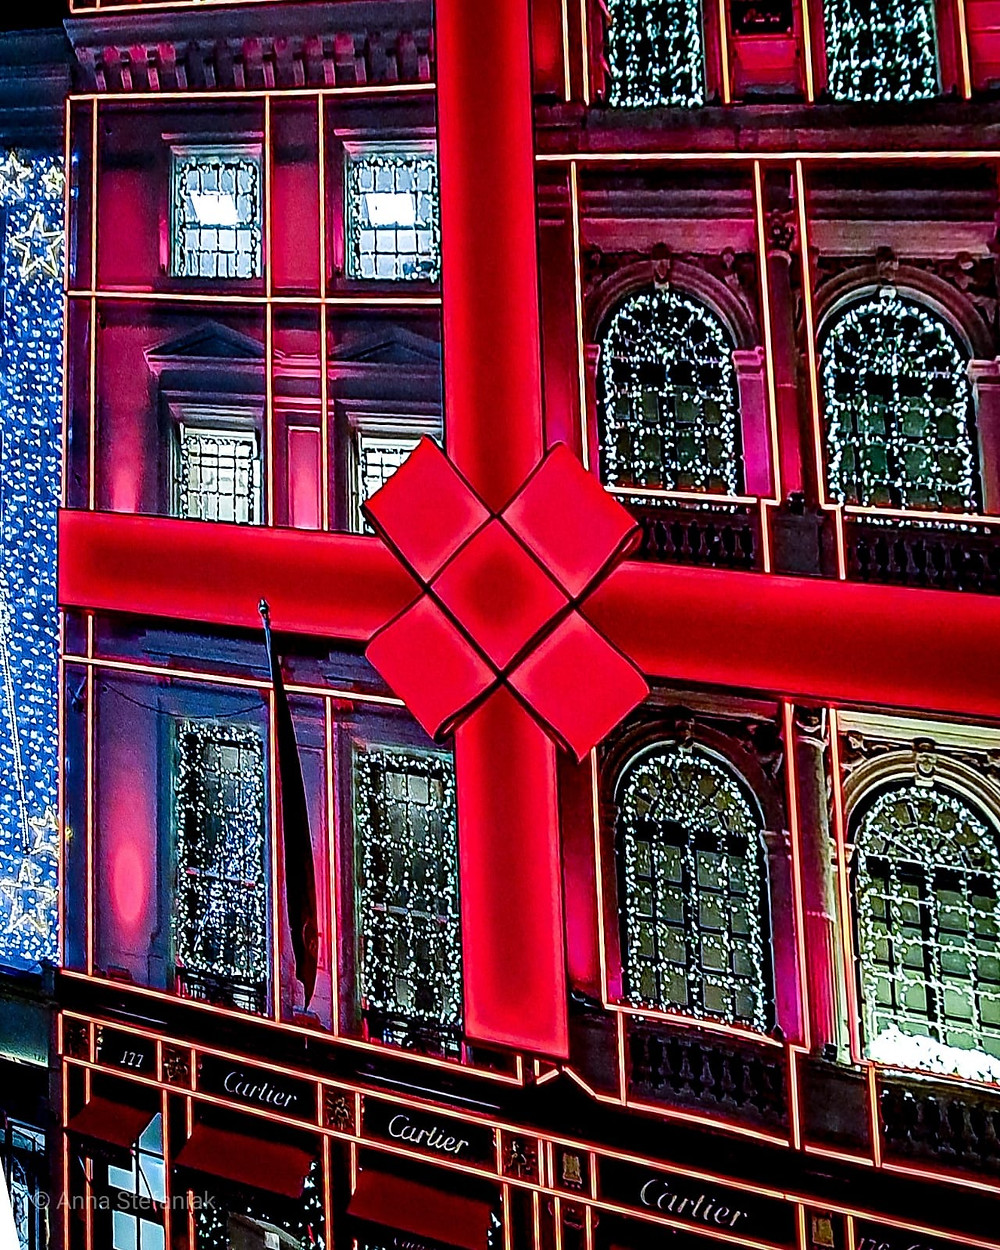 jewellery shop decorated as if it is a gift wrapped by a large red bow